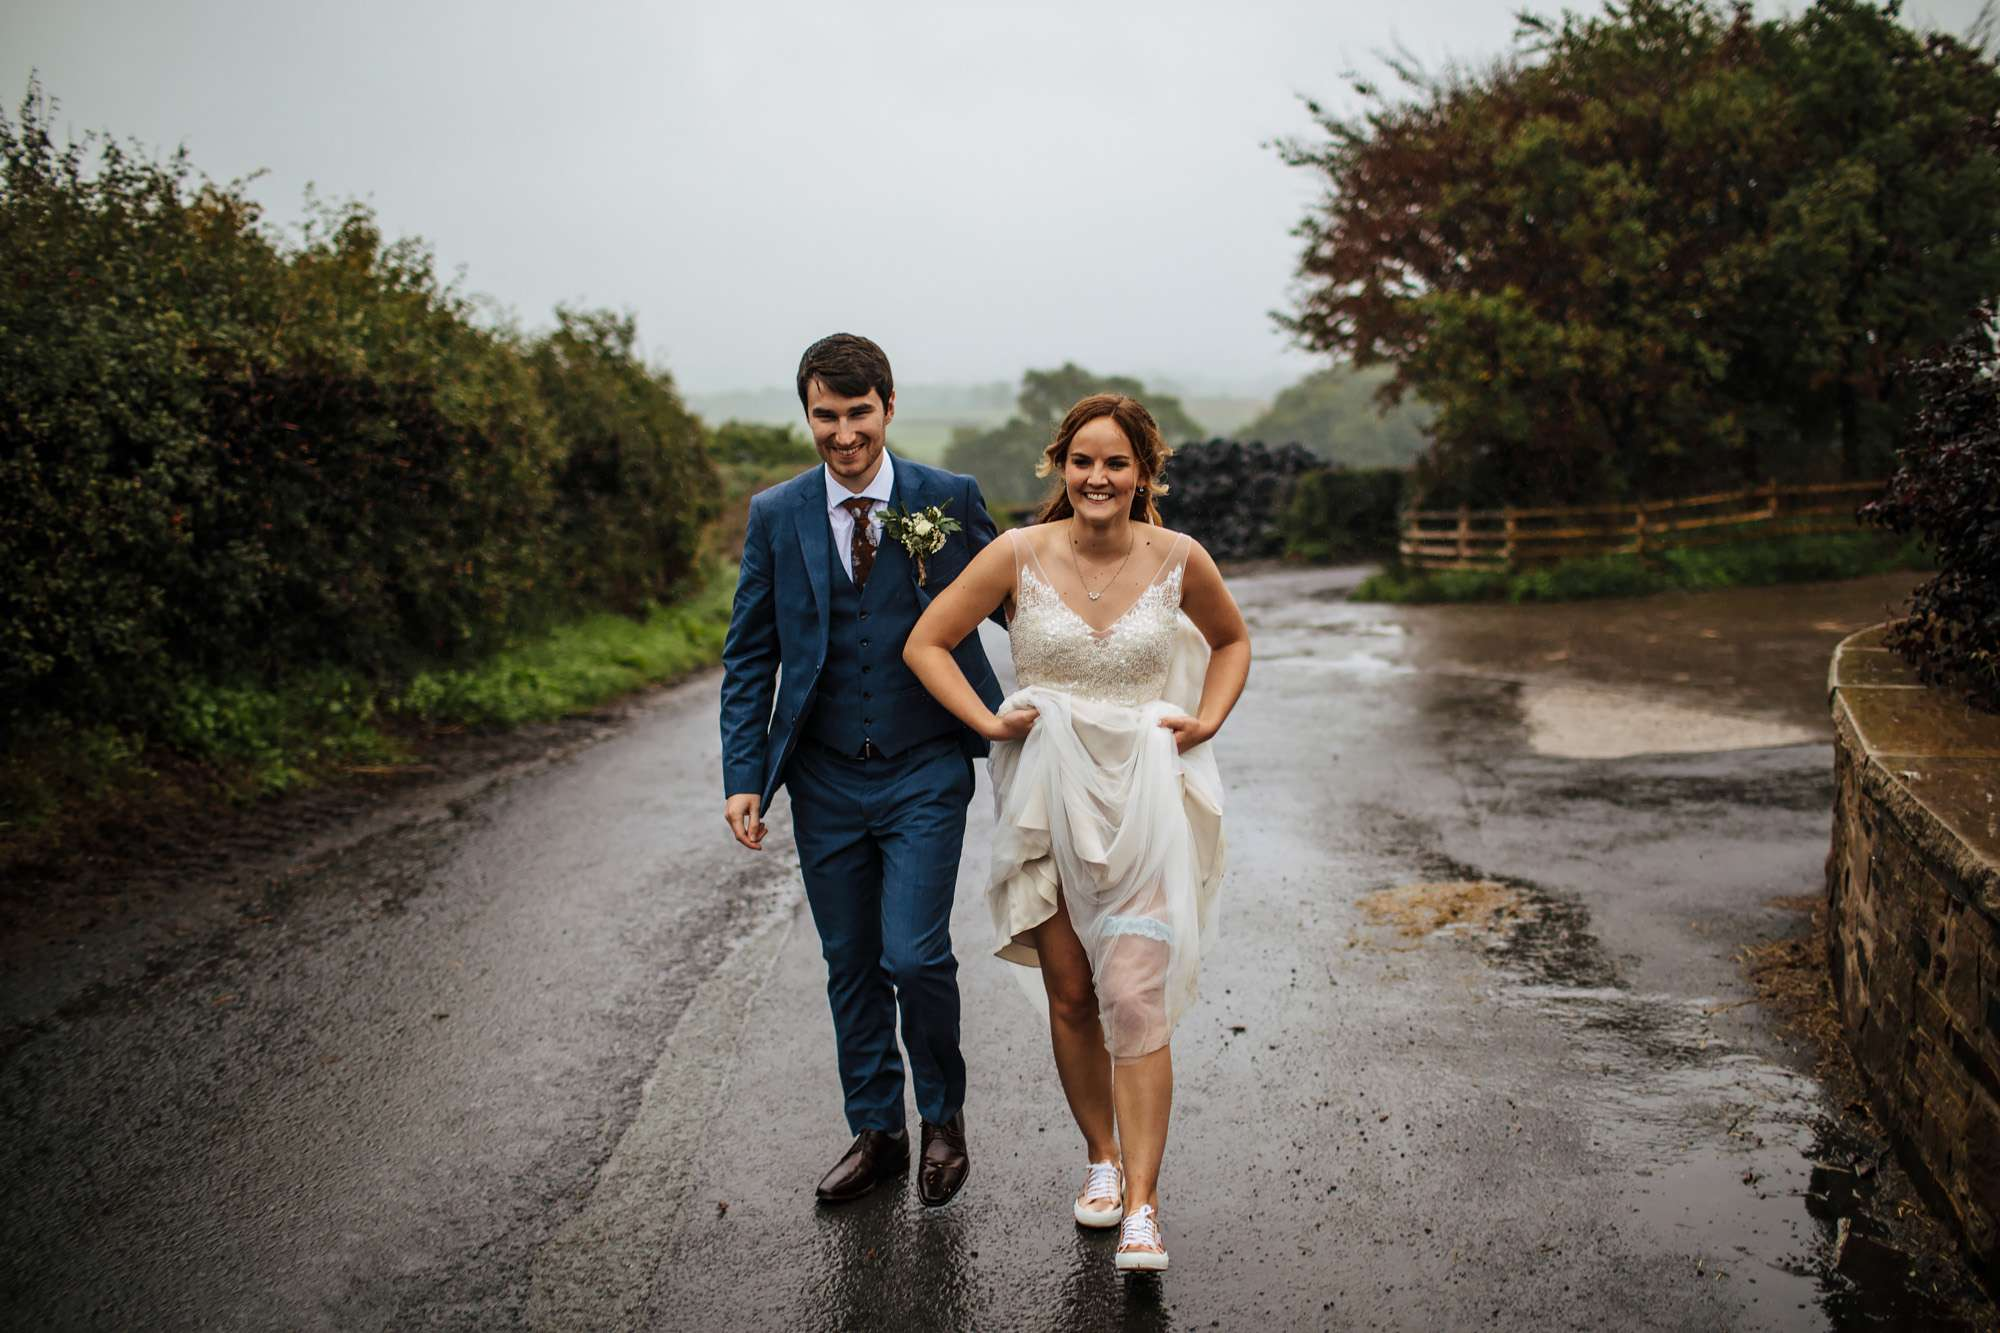 Bride and groom in the rain at a Harrogate wedding